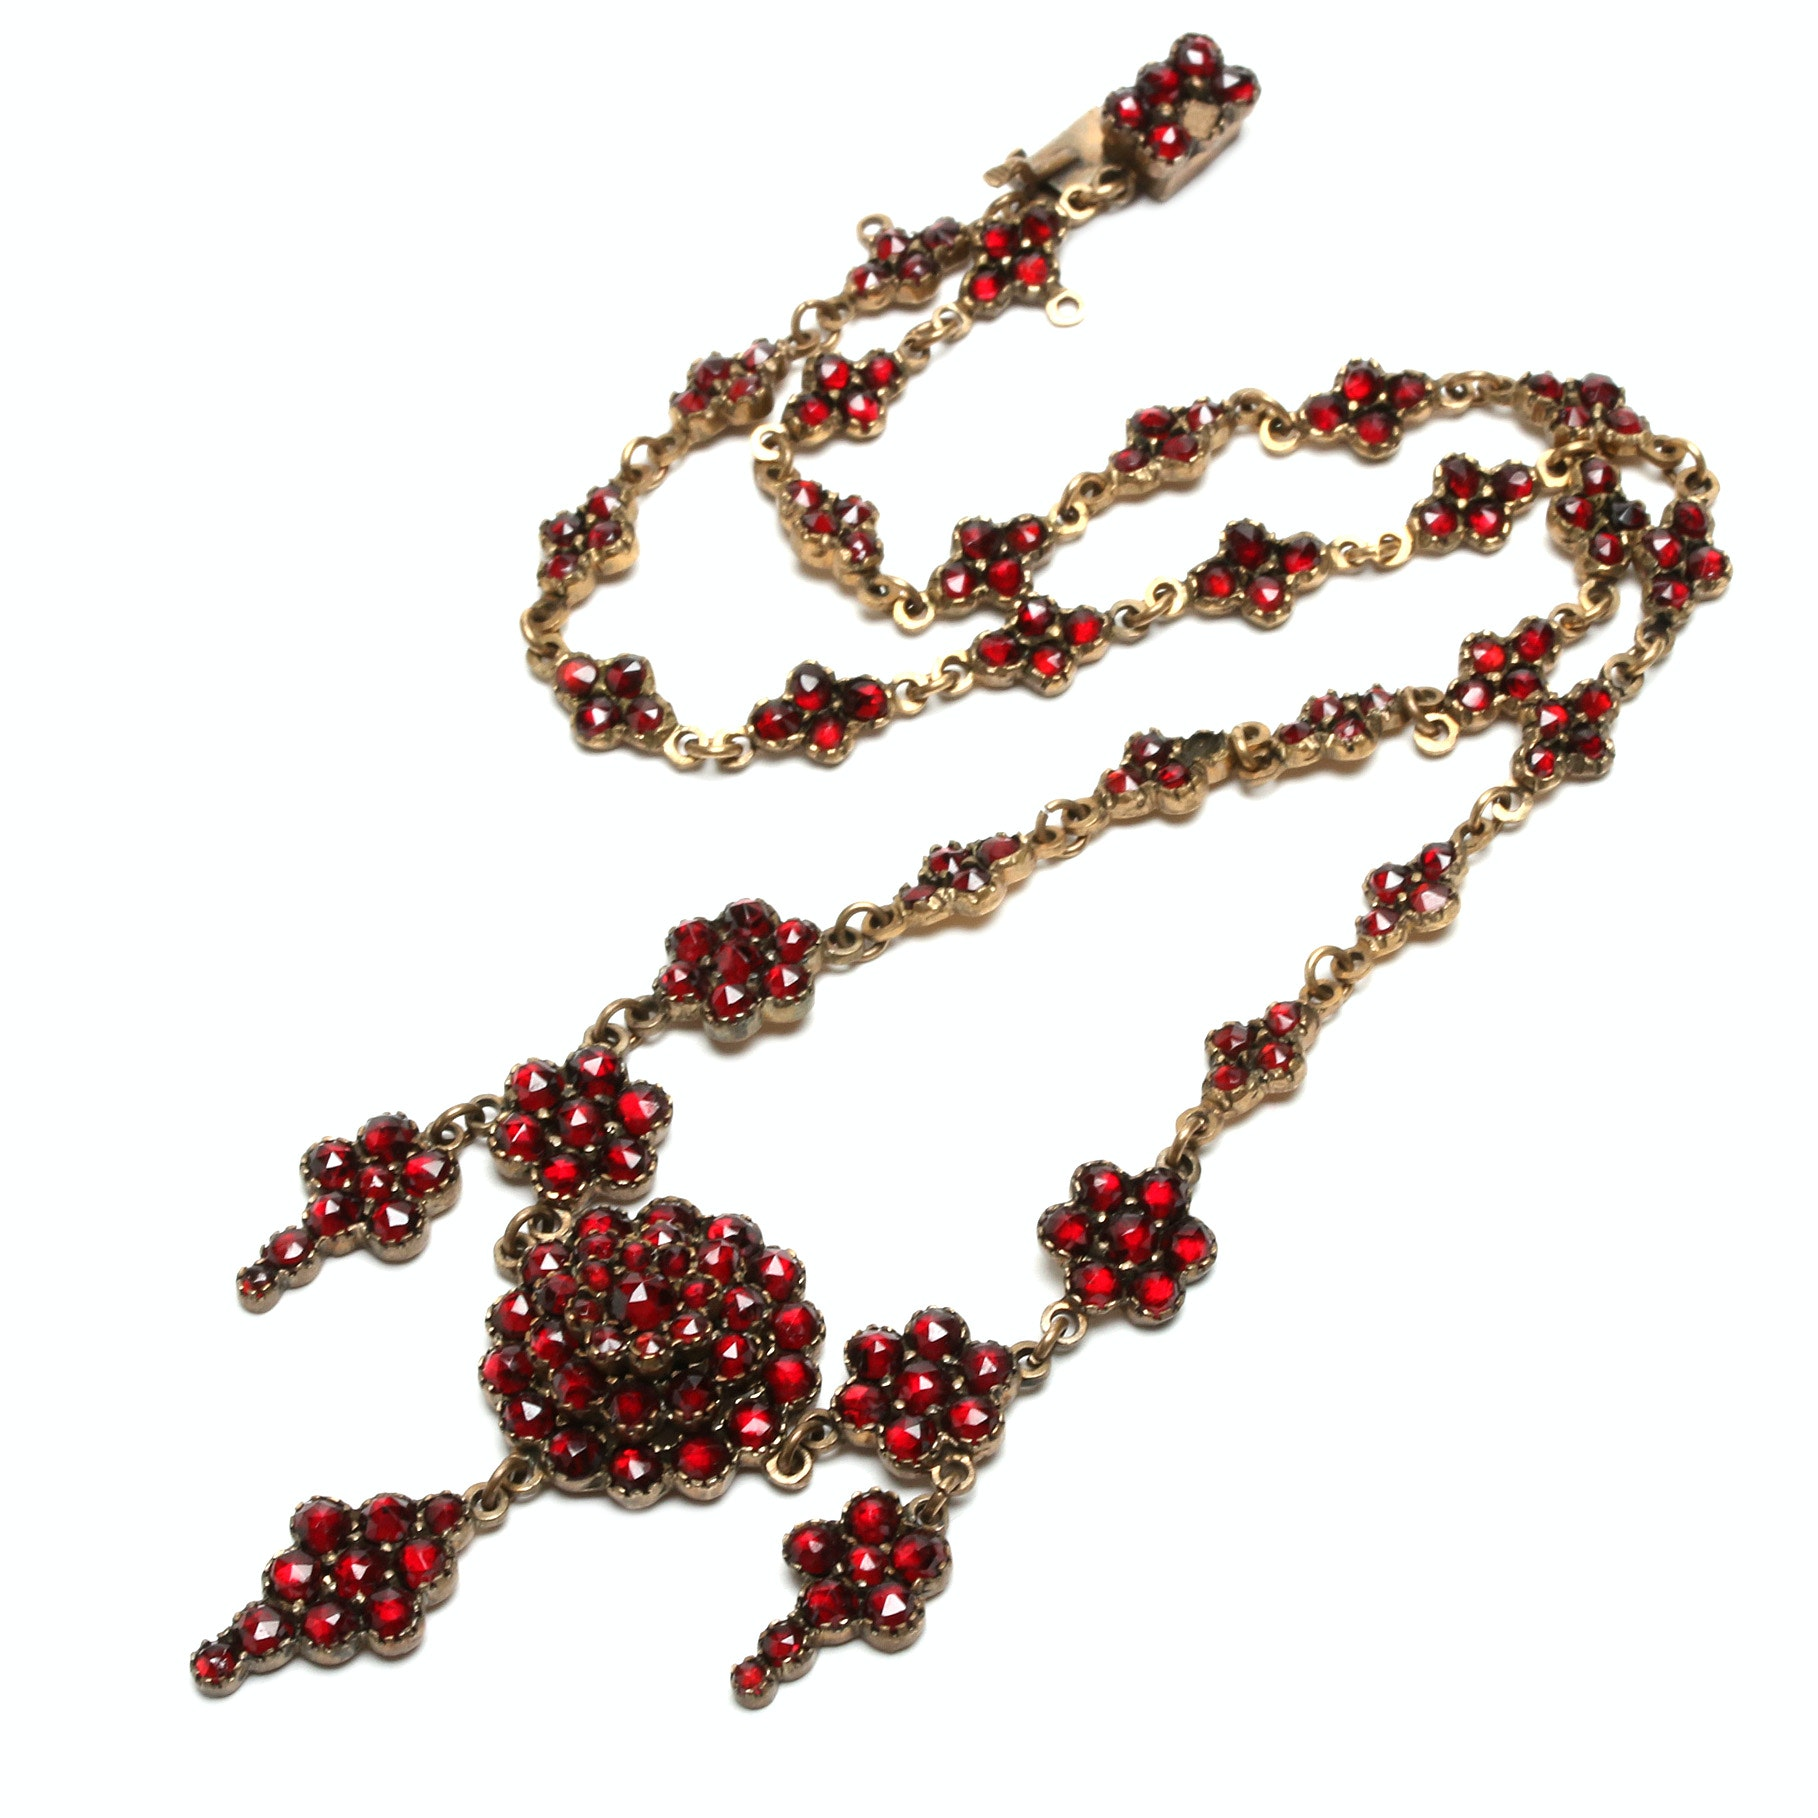 Early 1900s Gold Tone Garnet Necklace